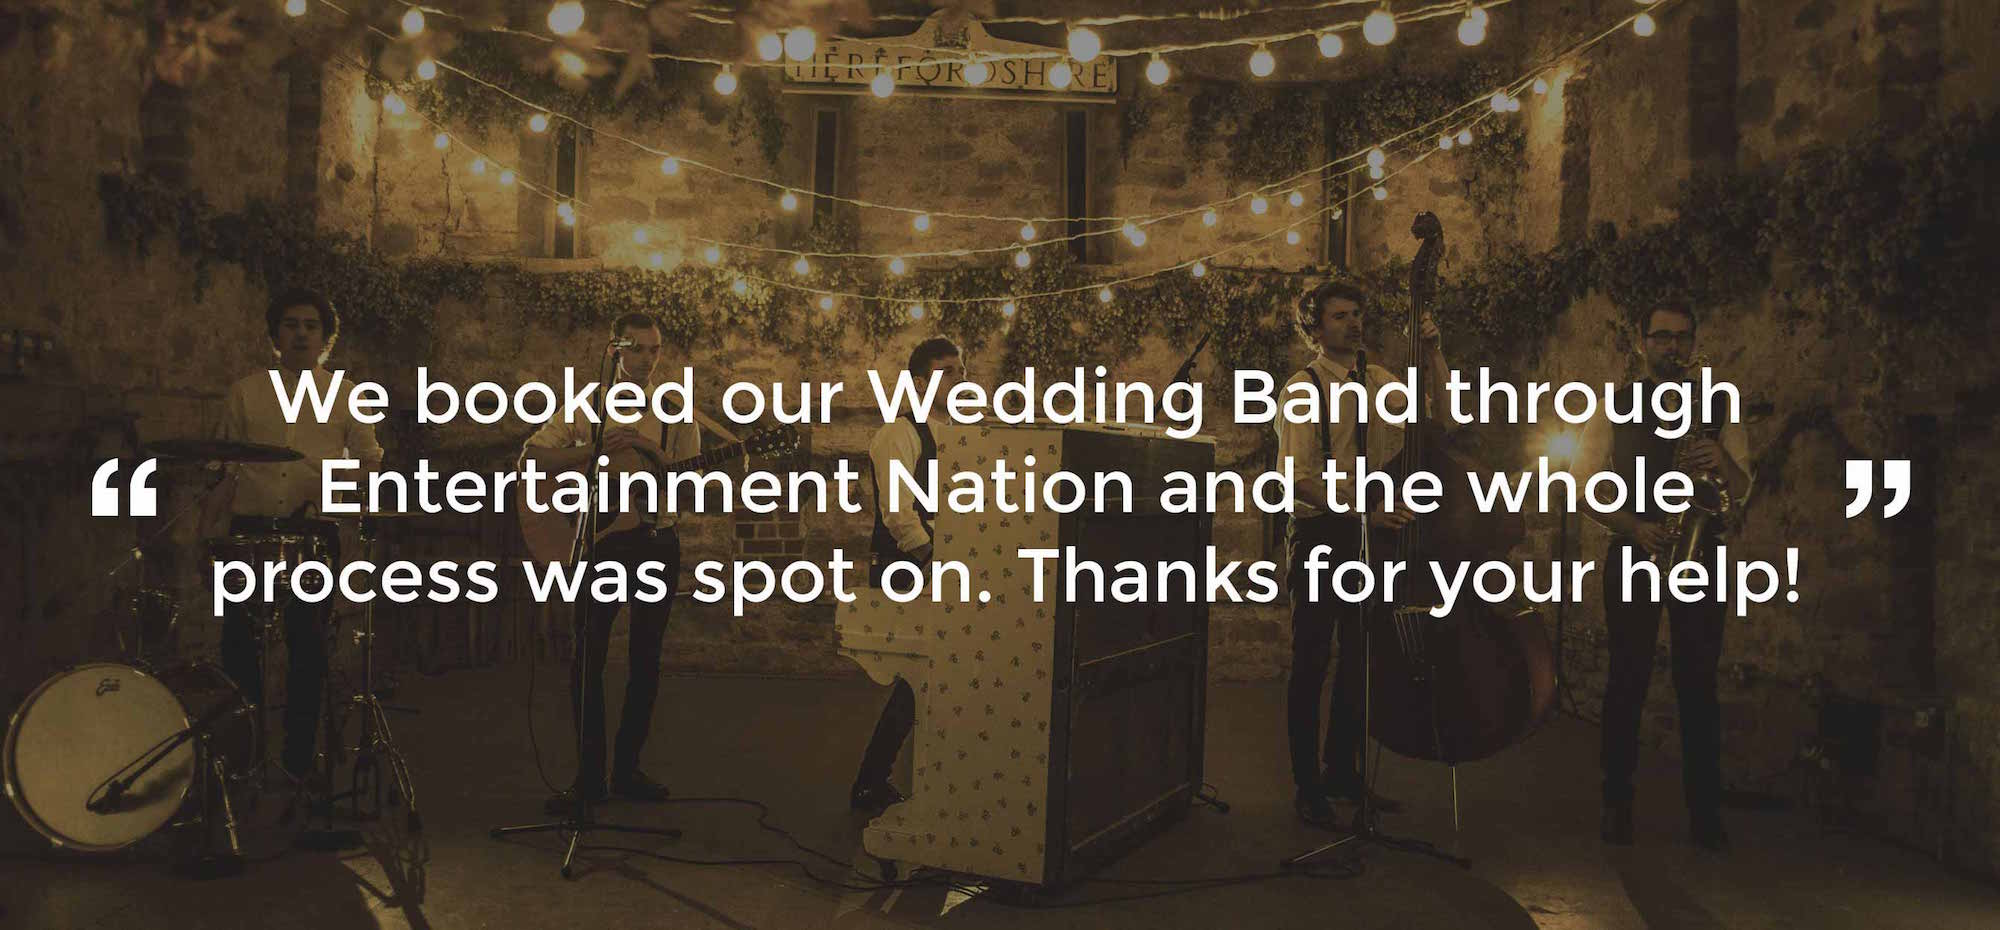 Review of Wedding Band Chester